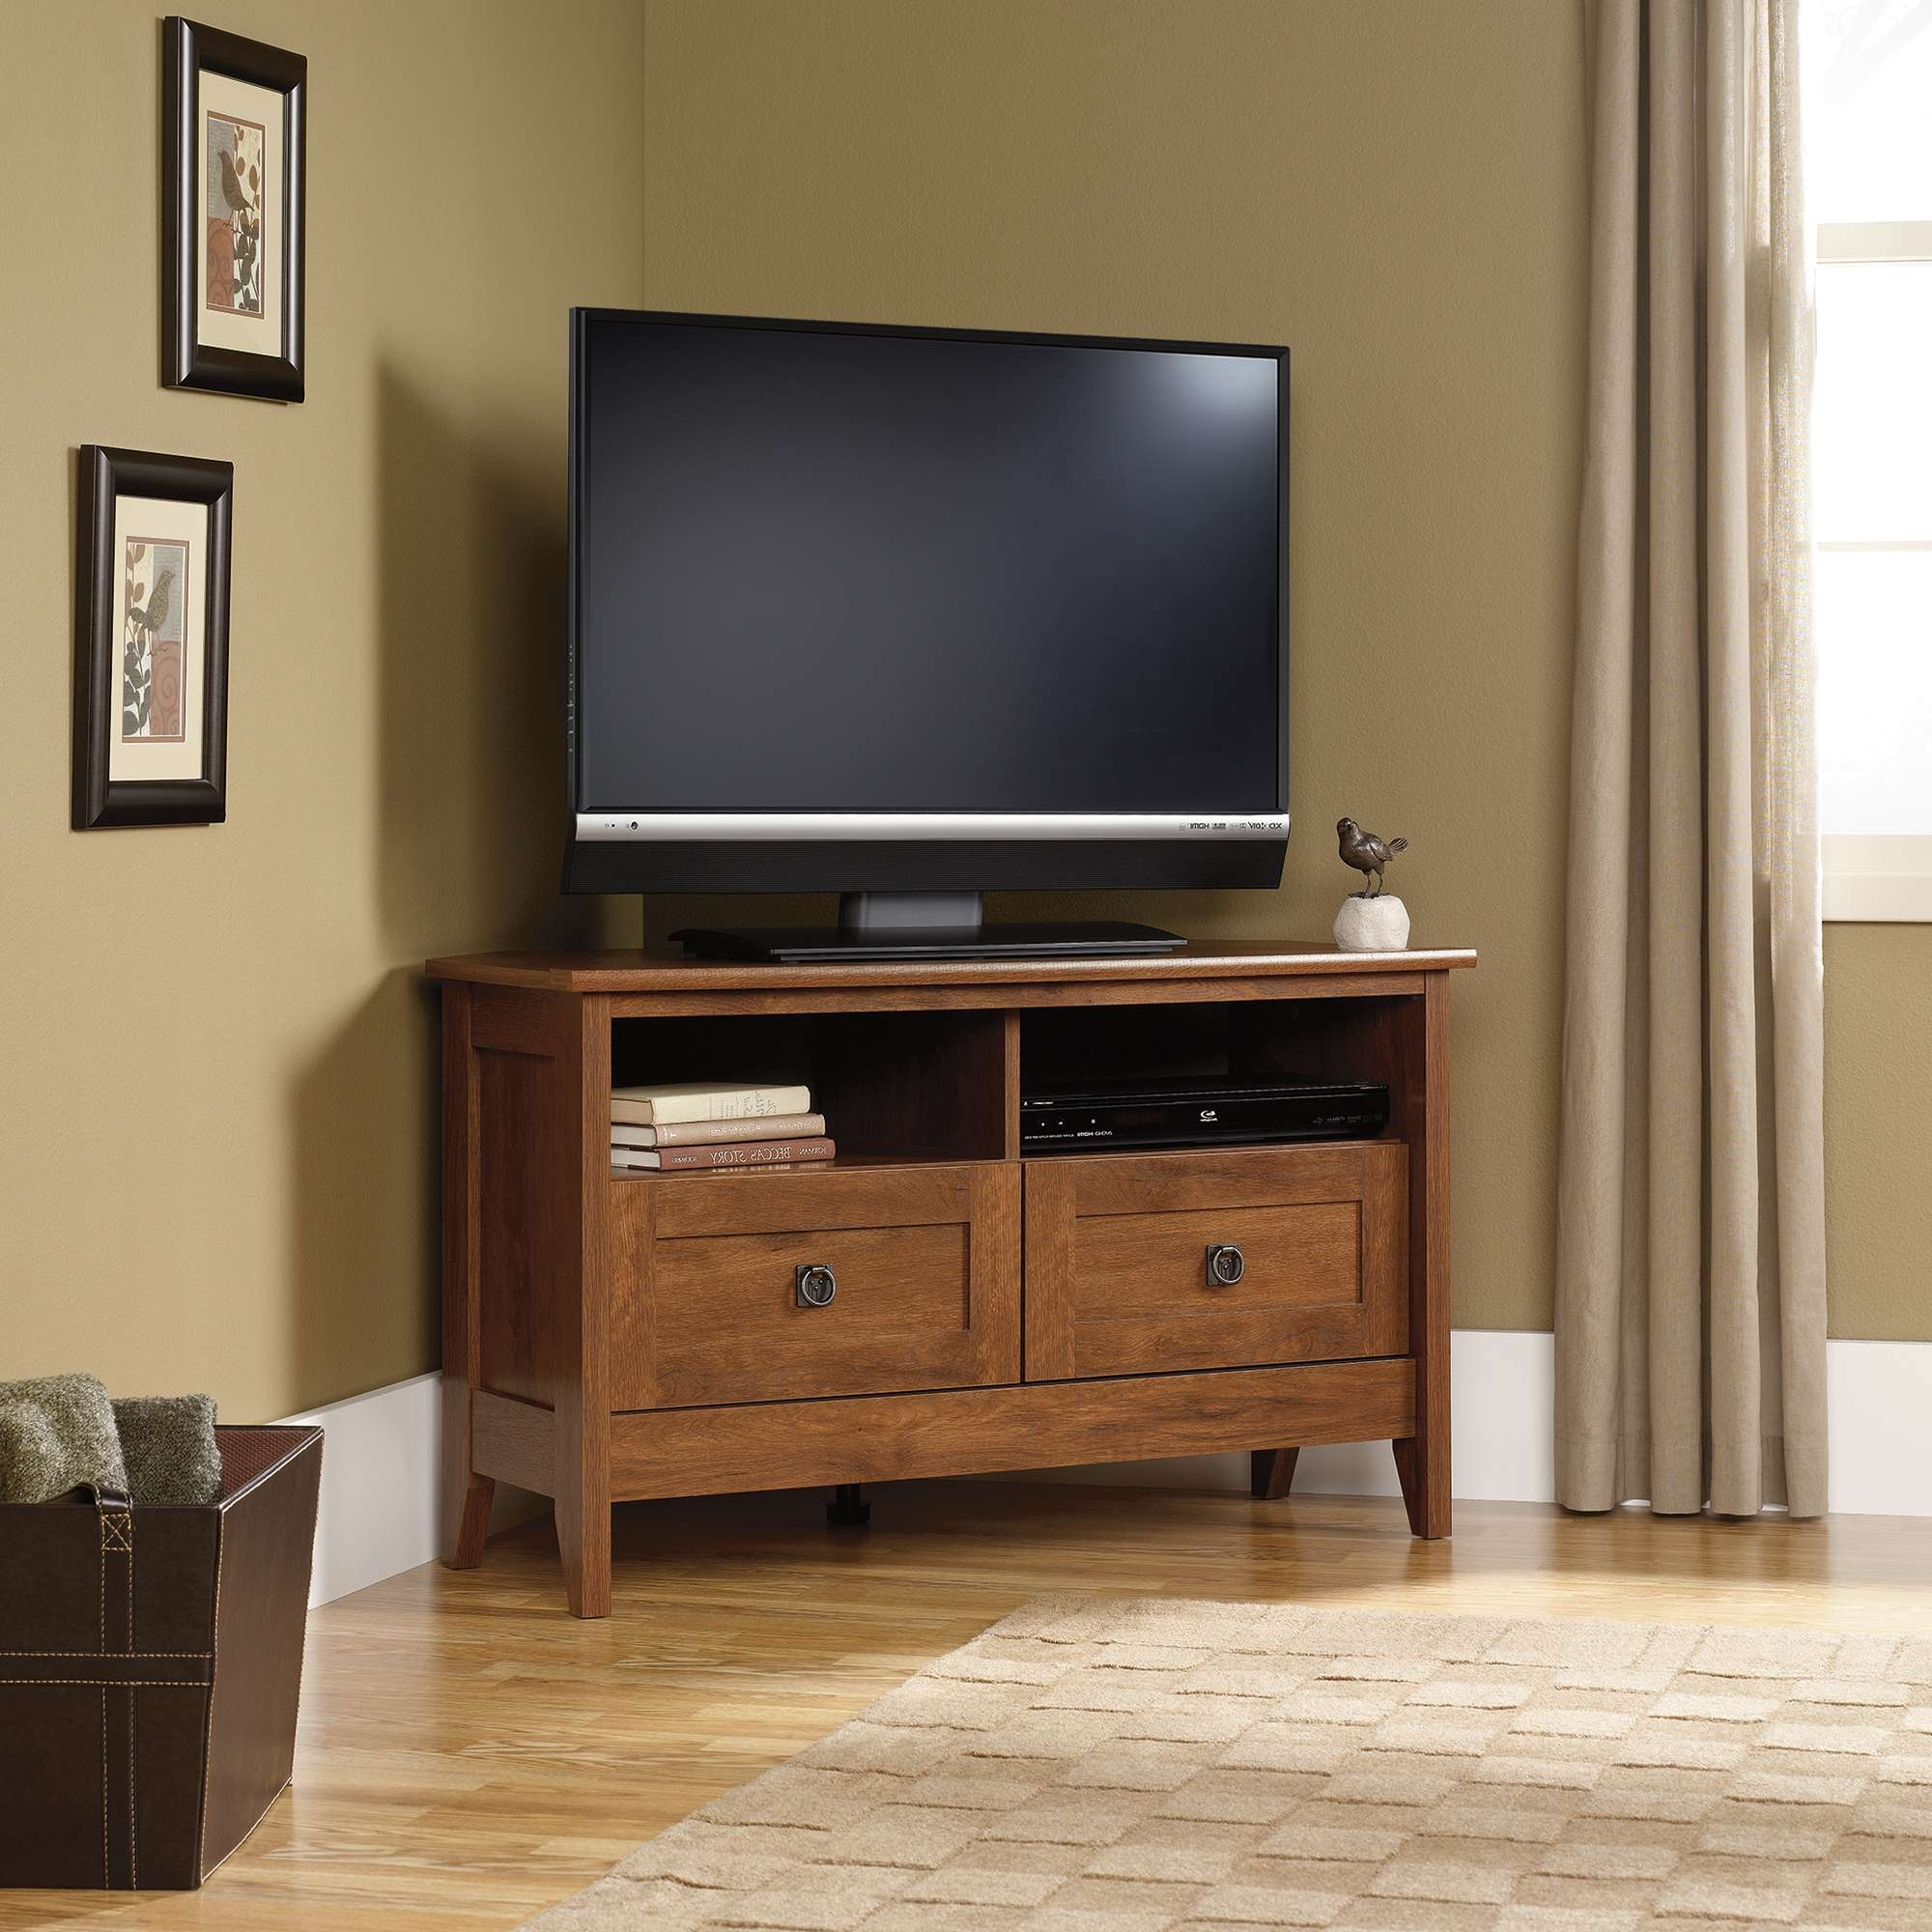 Sauder Select | Corner Tv Stand | 410627 | Sauder In Small Corner Tv Cabinets (View 13 of 20)